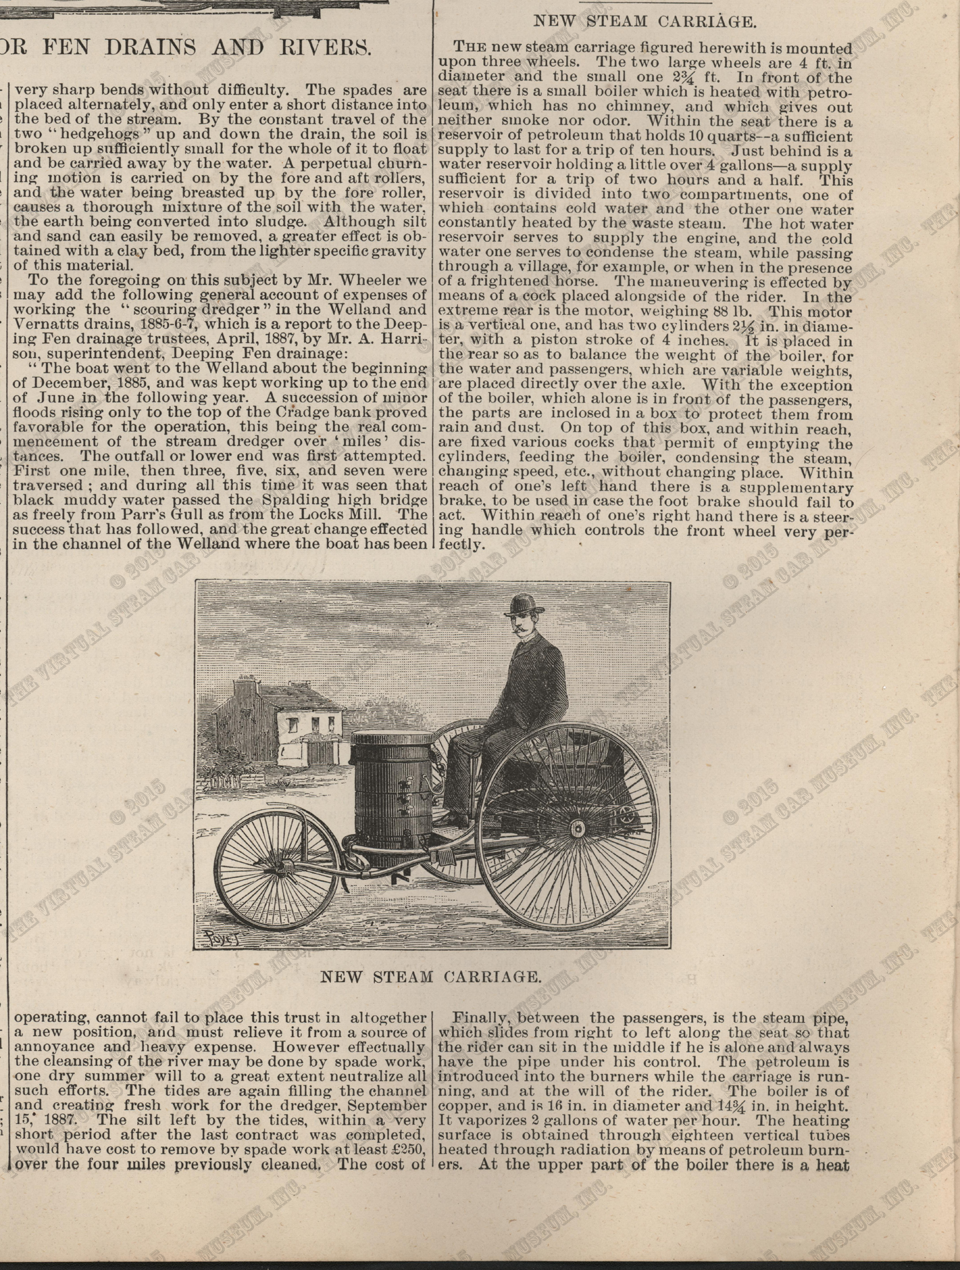 Steam Carriage, Scientific American Supplement, December 17, 1887, La Nature, p. 9962